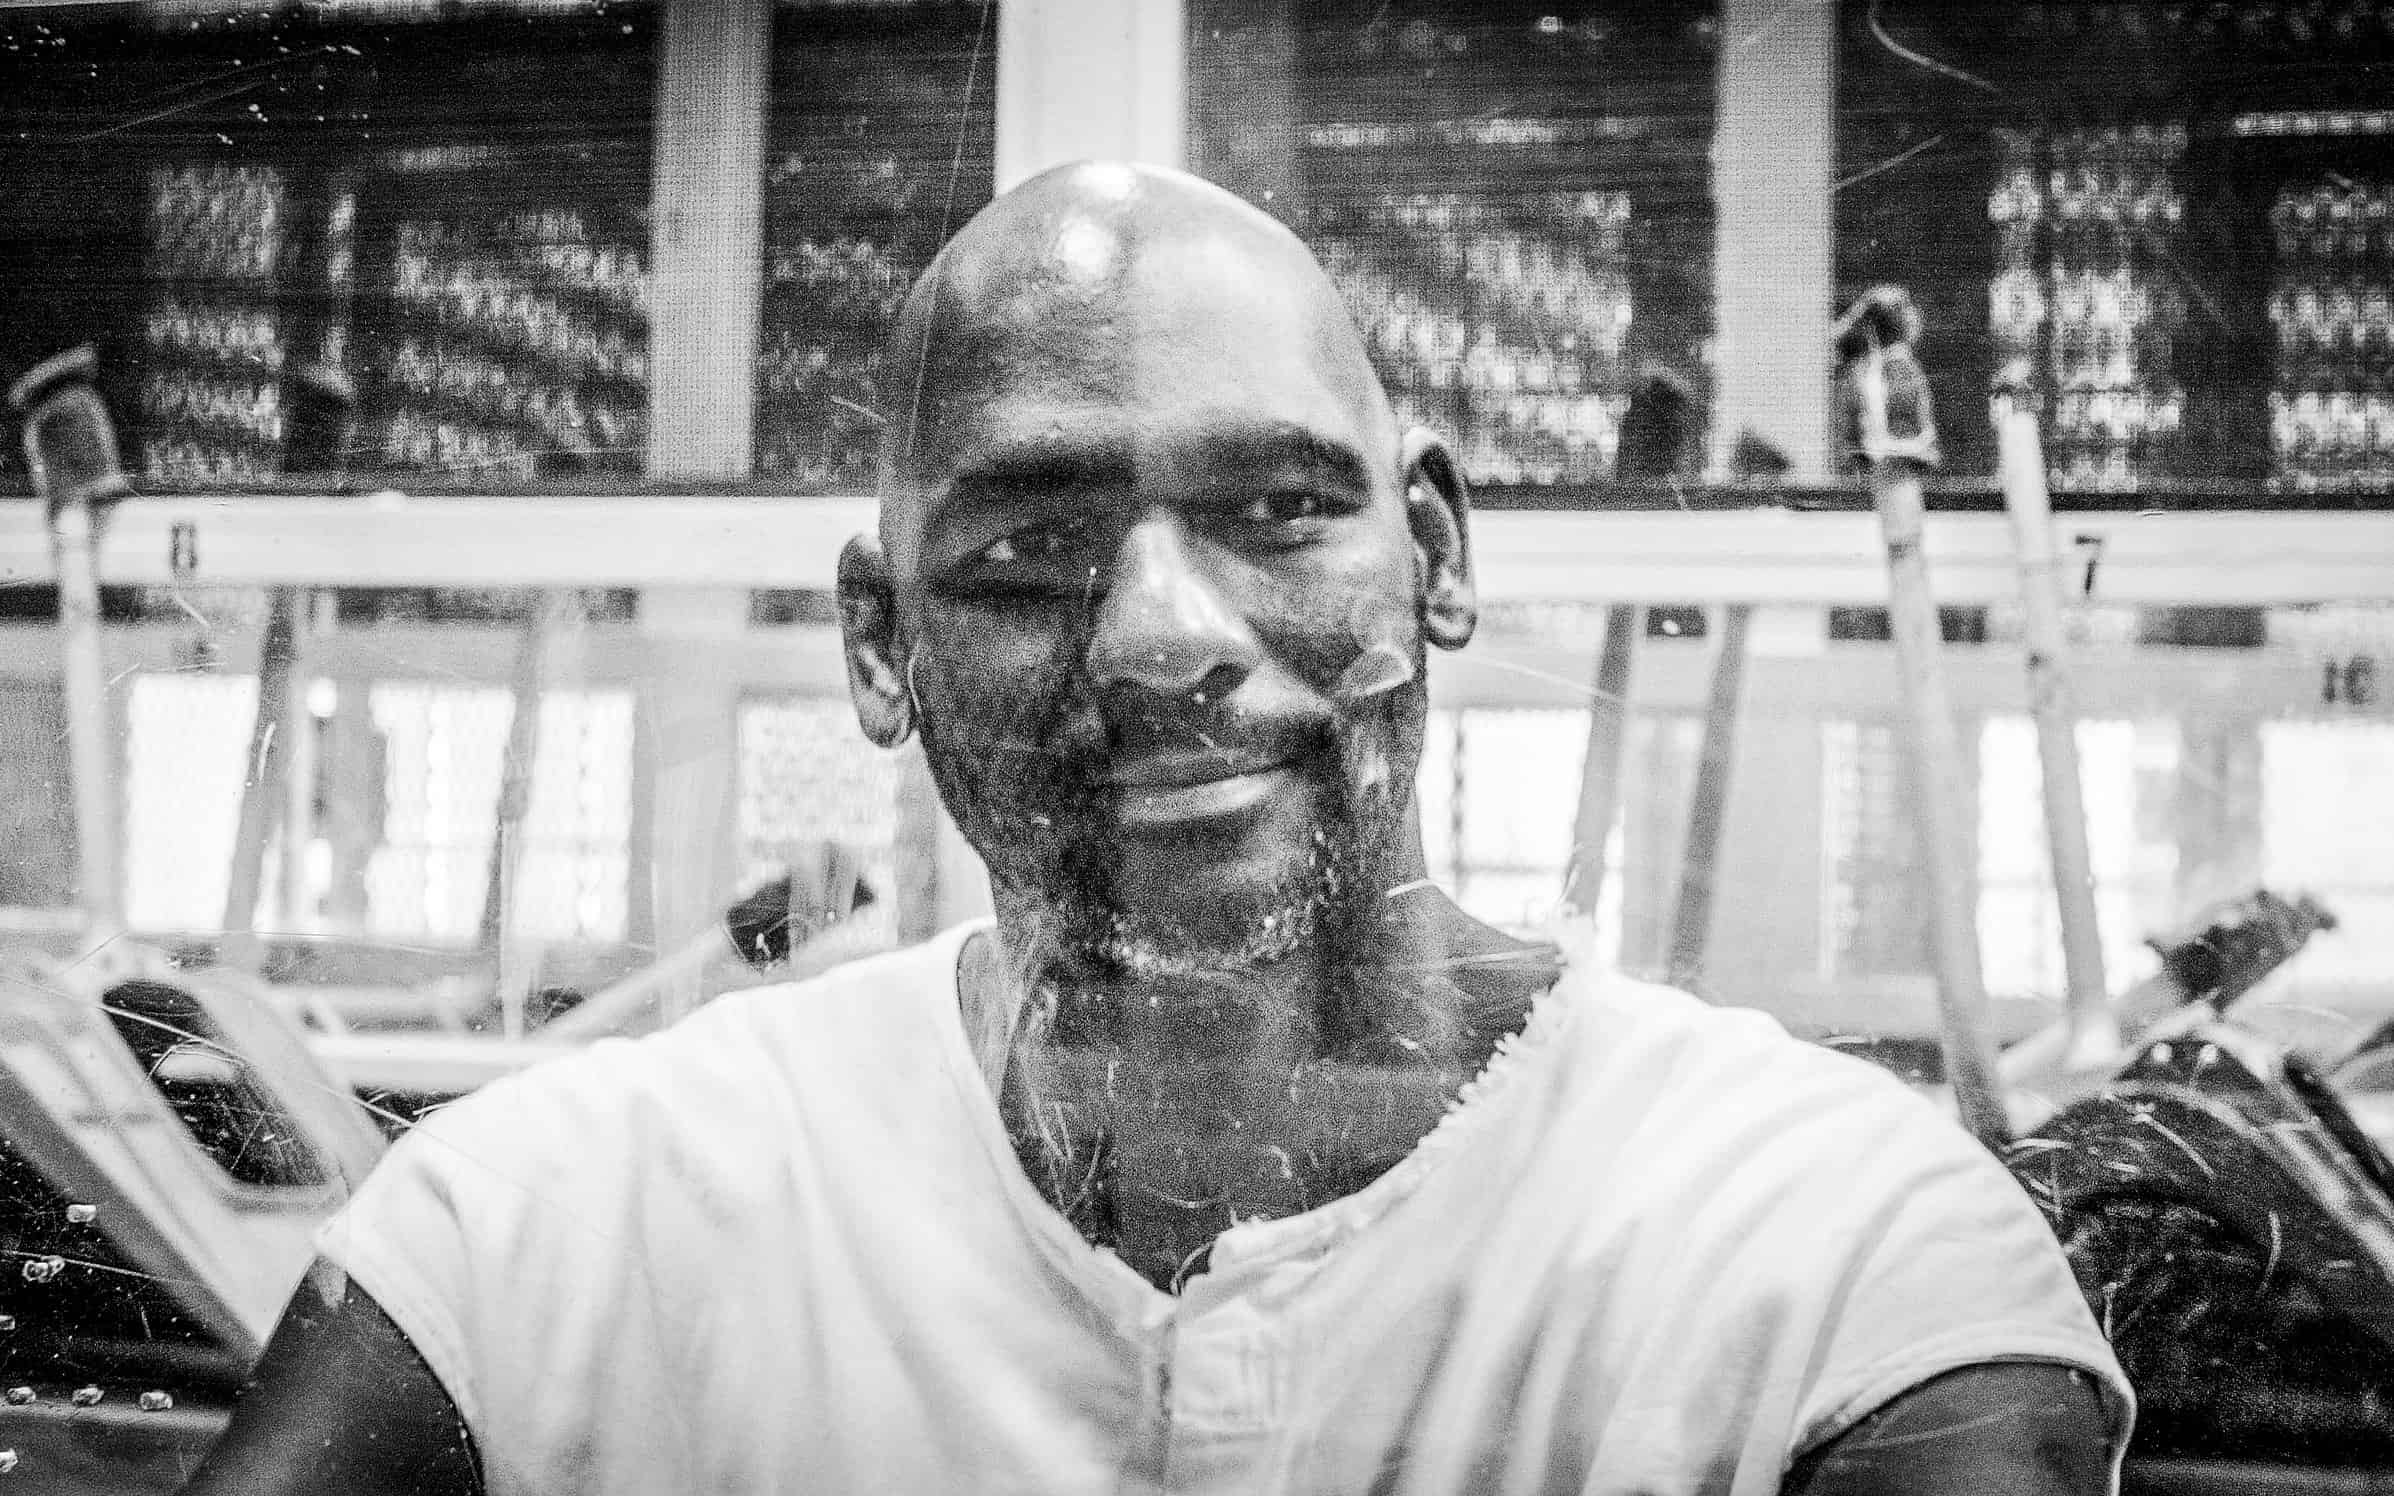 Man Wrongfully Convicted Gets Parole Thanks To Podcast